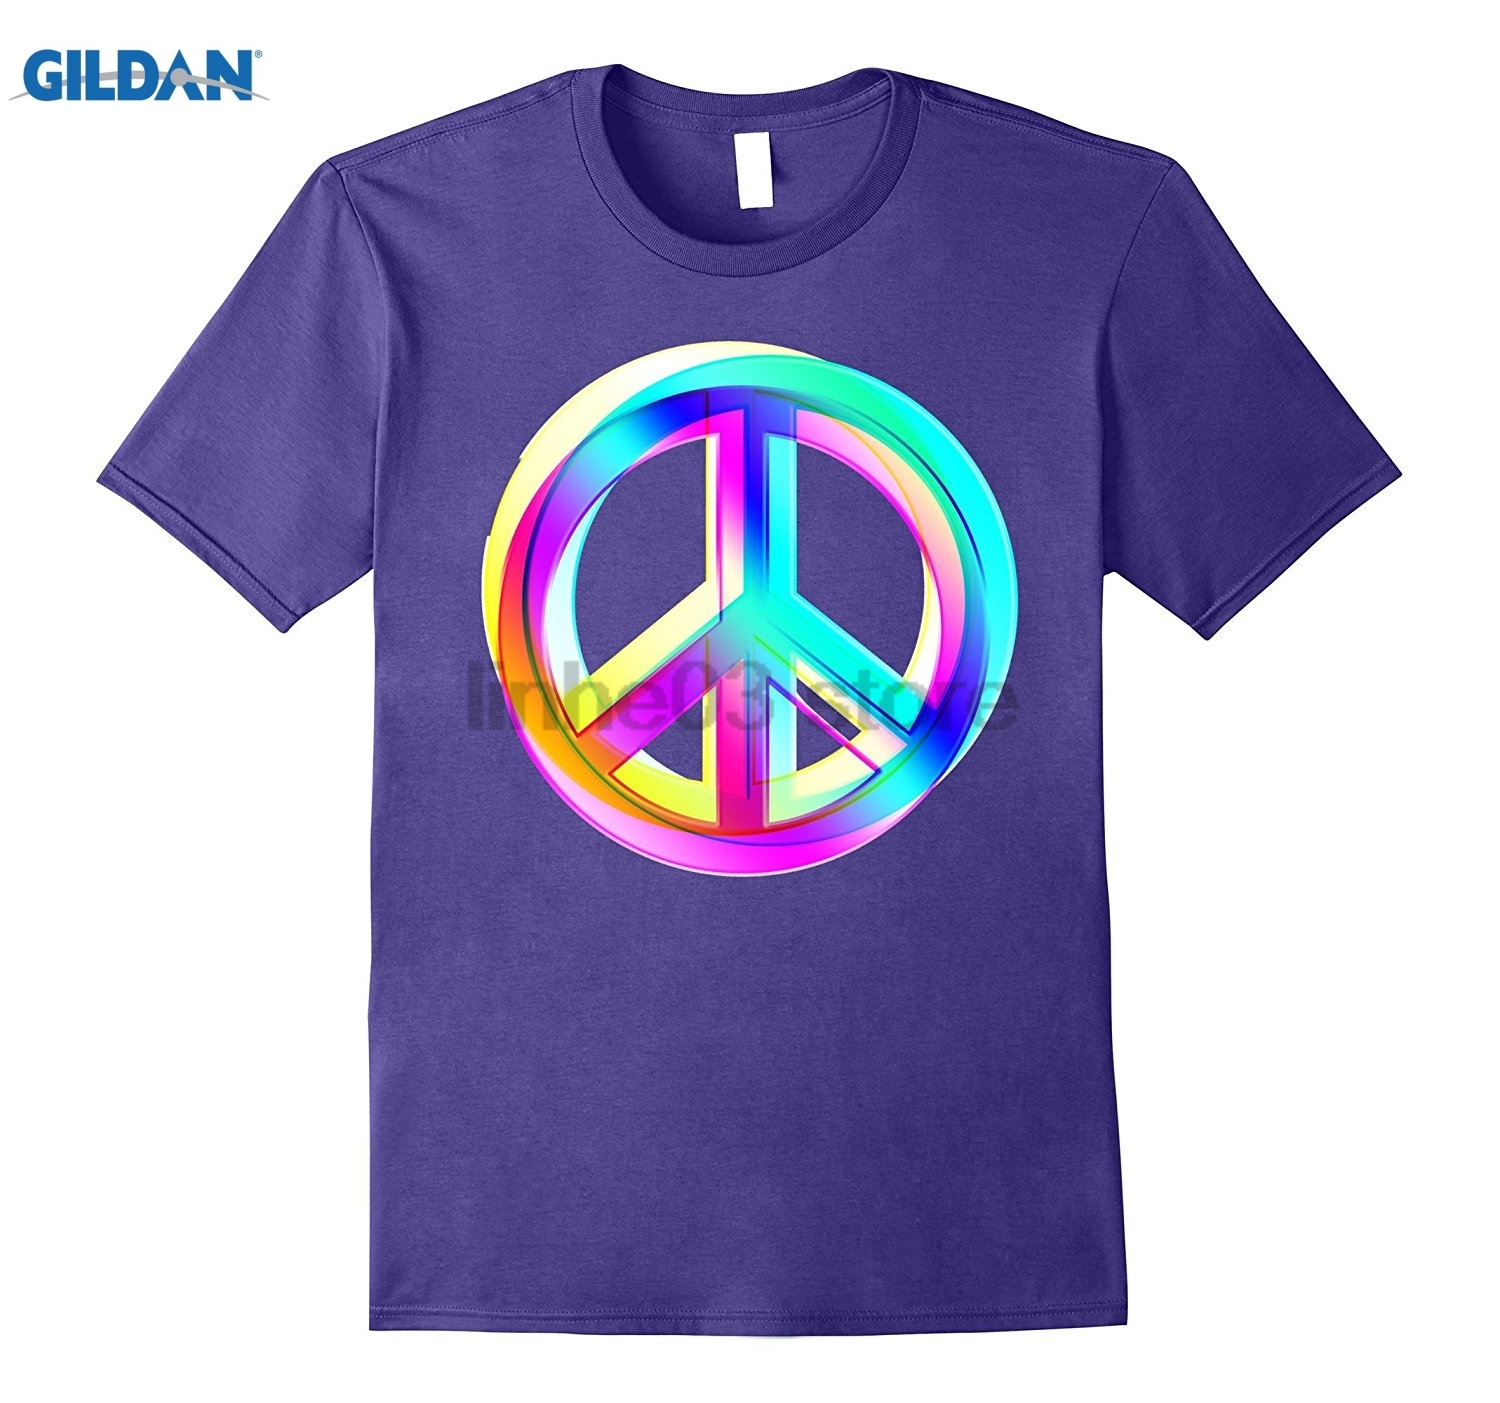 GILDAN Neon Colored Crossed PEACE signs T-Shirt Mothers Day Ms. T-shirt